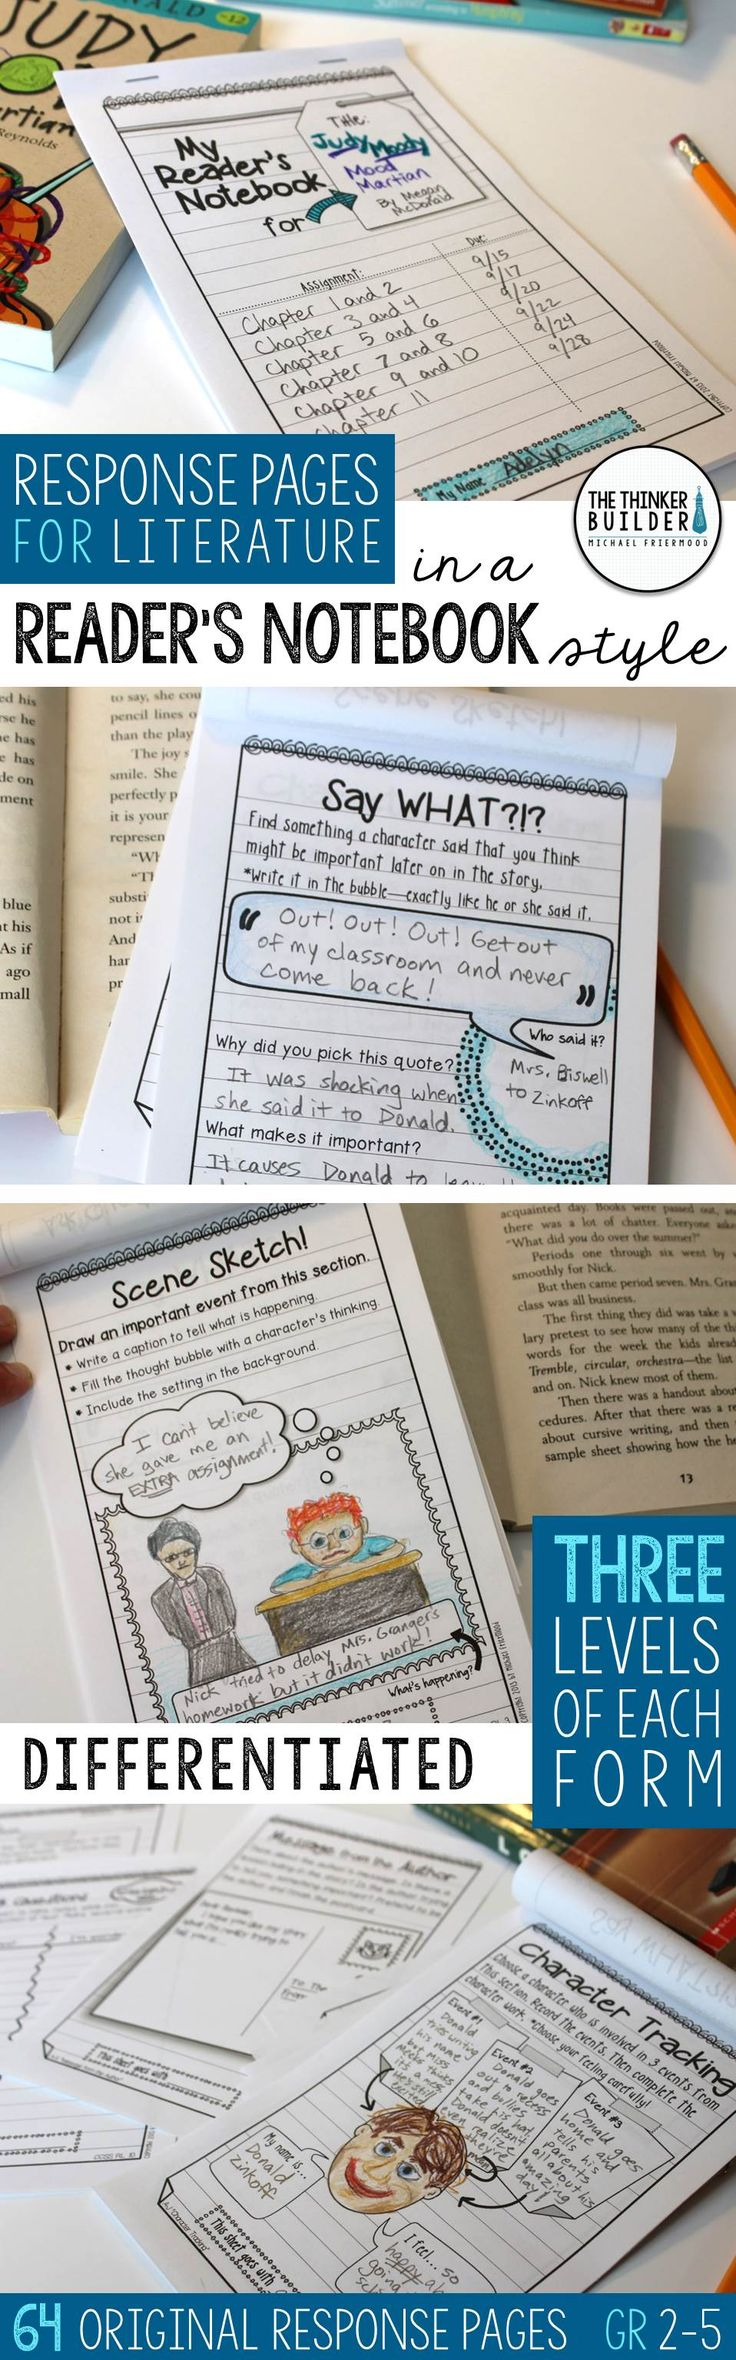 Get students thinking deeply about their reading! A huge collection of response pages designed in an engaging notebook format. Use individually or create customized reader's notebook packets. Use with virtually any piece of literature. Differentiated at three levels. Common Core aligned. Perfect for guided reading, book clubs, and practicing key reading skills. (Gr 2-5) $